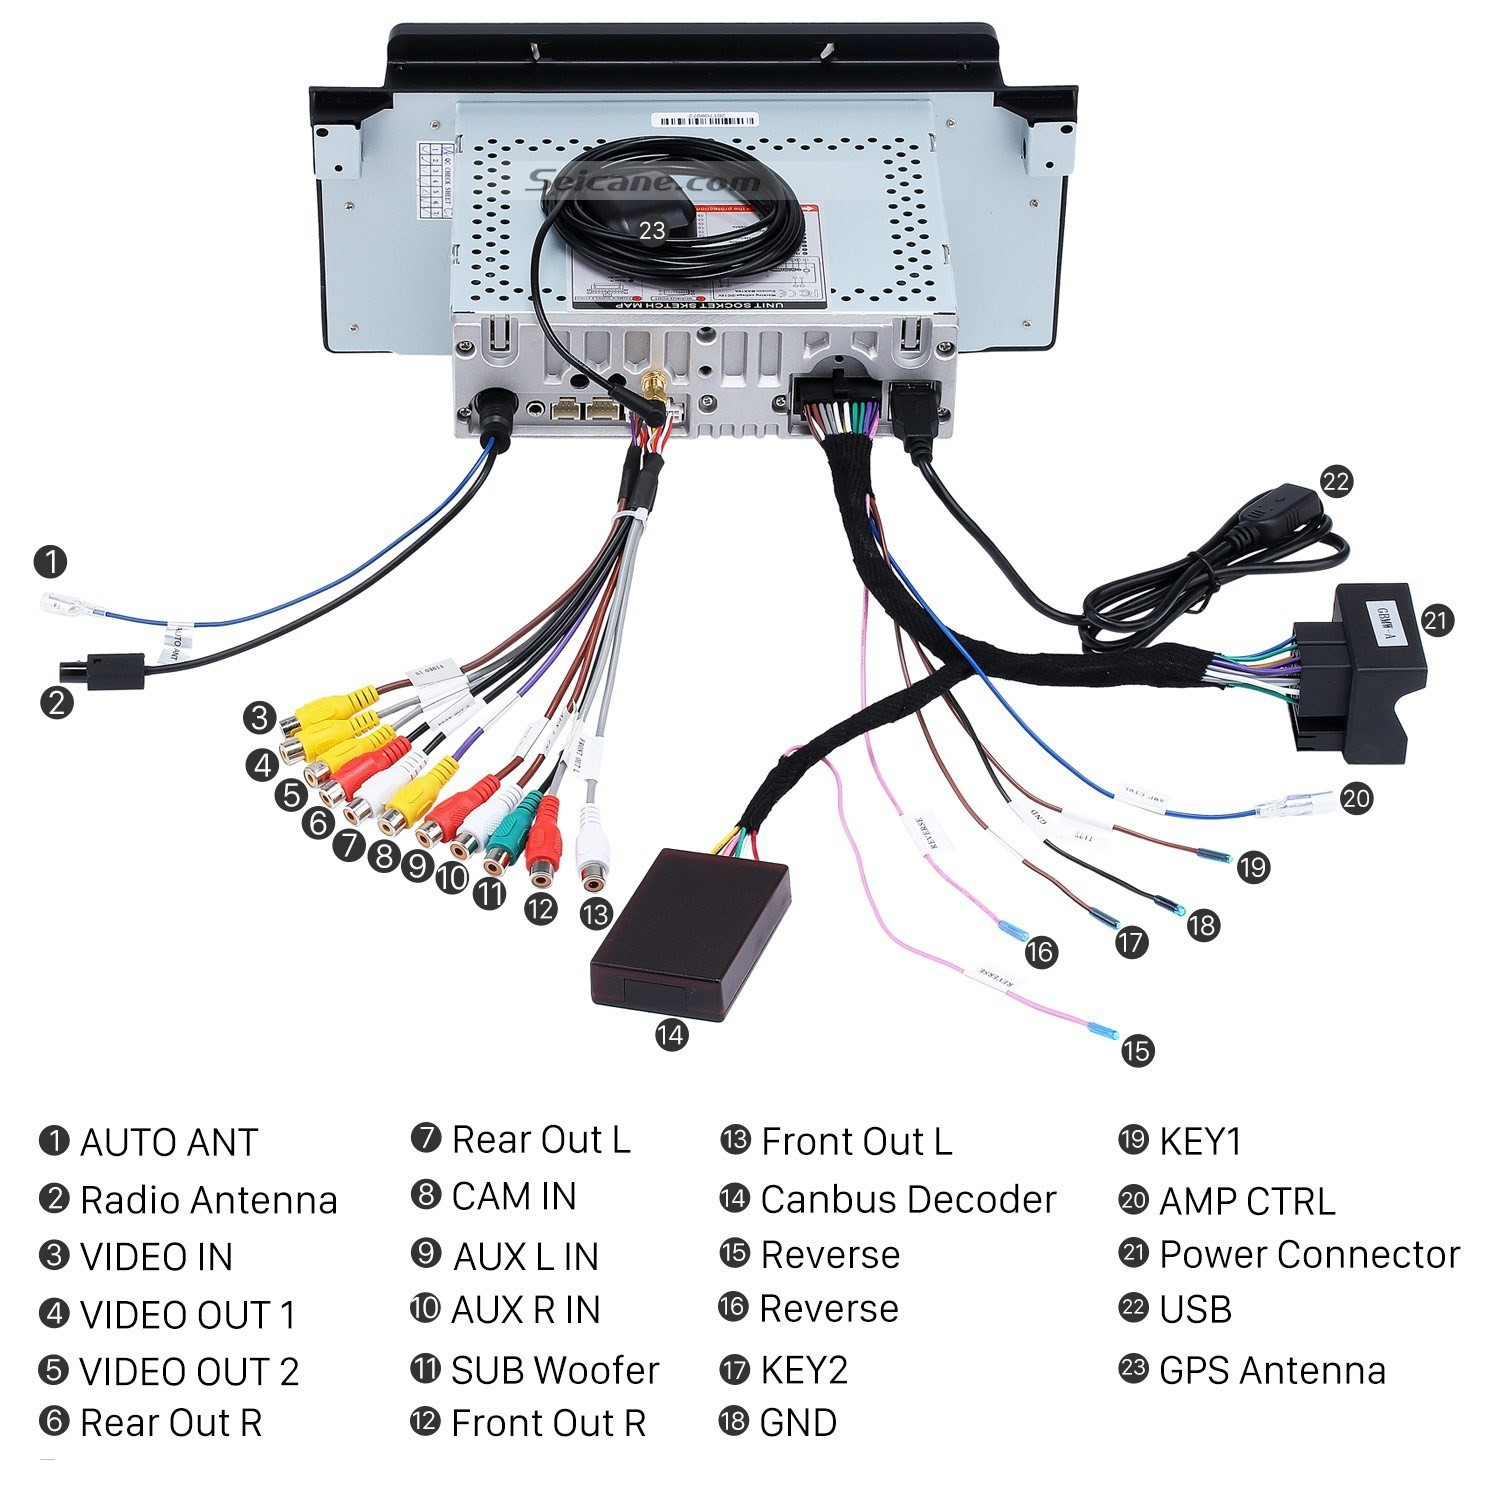 Best Of Aux Cable Wiring Diagram Image Wire Newest Light Inch 2000 2007 Bmw X5 E53 3 0i